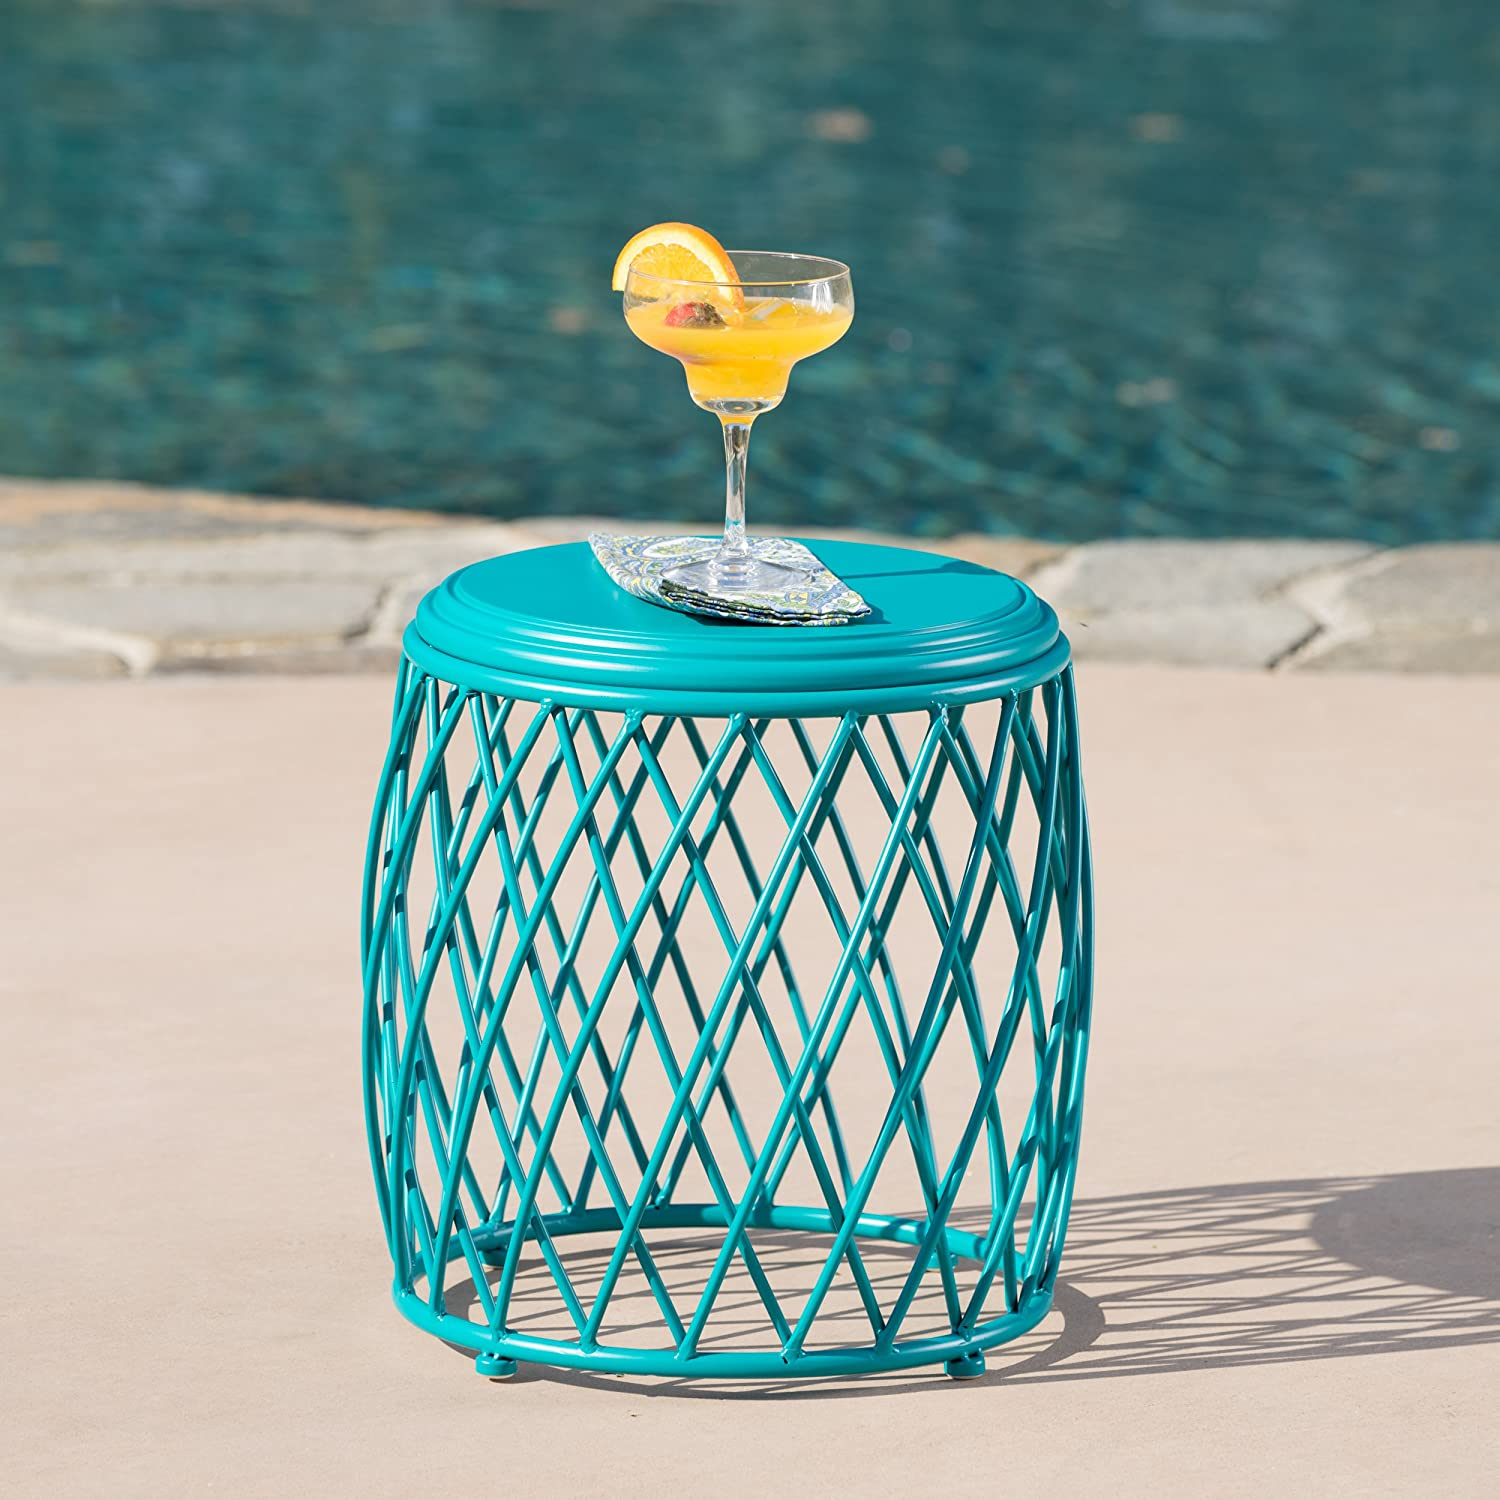 Christopher Knight Home 301949 Alamera Ckh Outdoor Accent Tables, Matte Teal